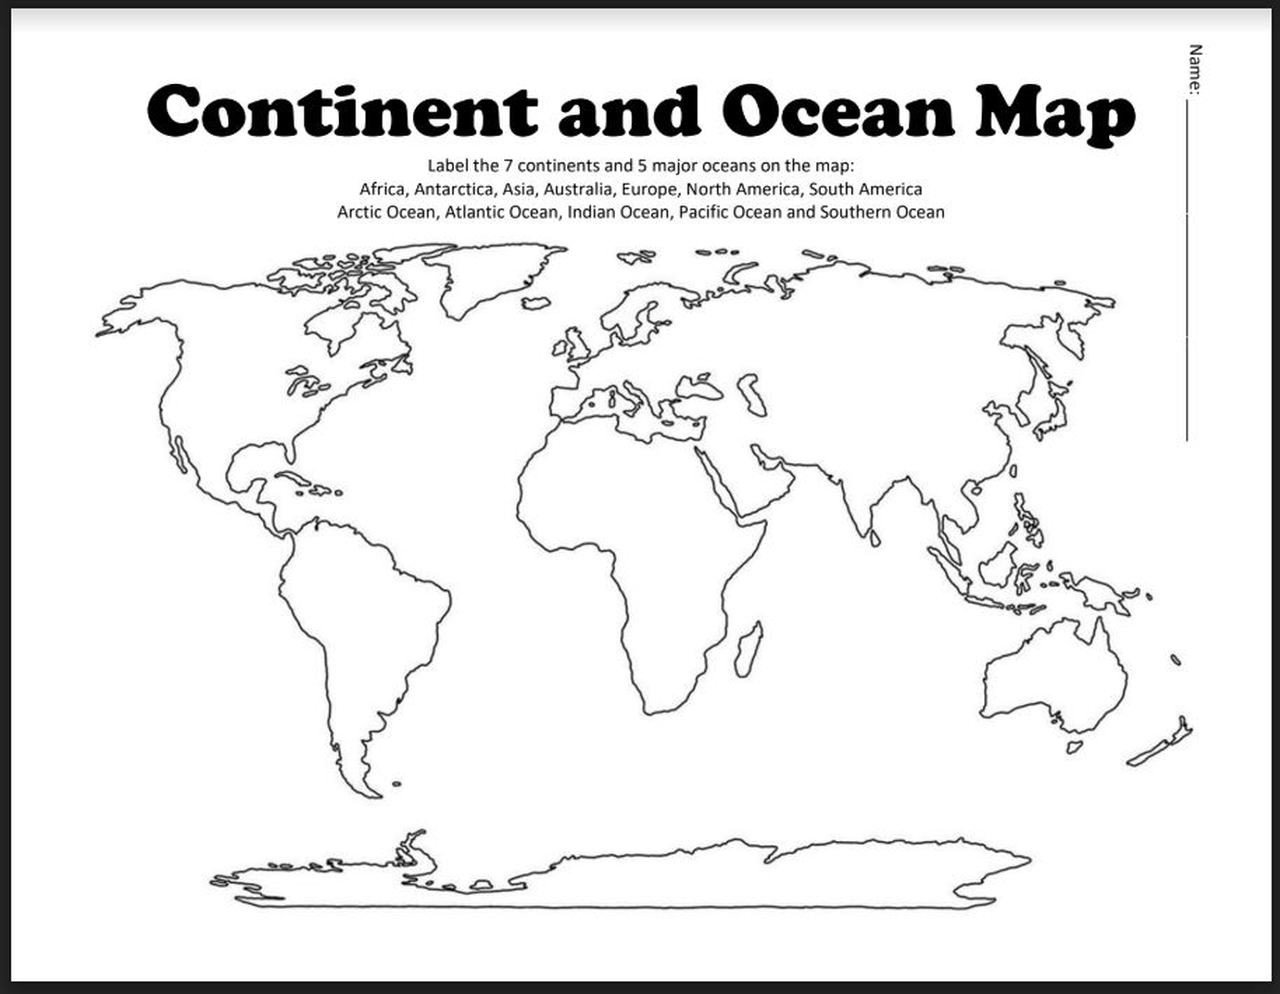 Label Continents and Oceans Worksheets Continent and Ocean Map Worksheet Blank